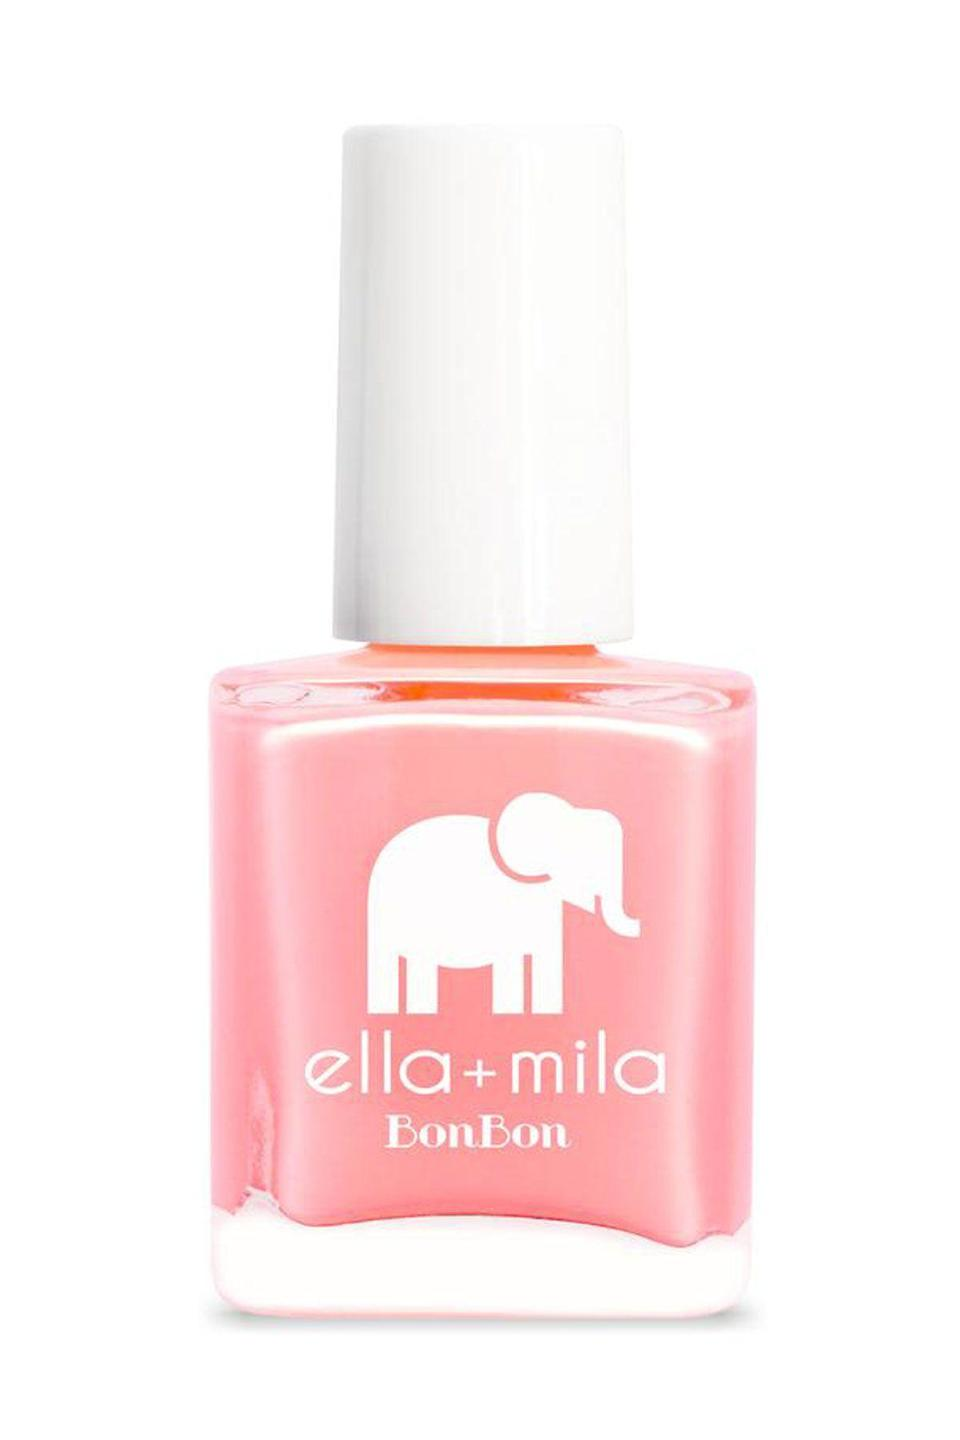 """<p><strong>ella+mila</strong></p><p>ulta.com</p><p><strong>$19.95</strong></p><p><a href=""""https://go.redirectingat.com?id=74968X1596630&url=https%3A%2F%2Fwww.ulta.com%2Fbonbon-collection-nail-polish%3FproductId%3DxlsImpprod16051024&sref=https%3A%2F%2Fwww.seventeen.com%2Fbeauty%2Fnails%2Fg2741%2Fbest-spring-nail-colors%2F"""" rel=""""nofollow noopener"""" target=""""_blank"""" data-ylk=""""slk:SHOP NOW"""" class=""""link rapid-noclick-resp"""">SHOP NOW</a></p><p>Wear this light coral shade from spring into late summer. </p>"""